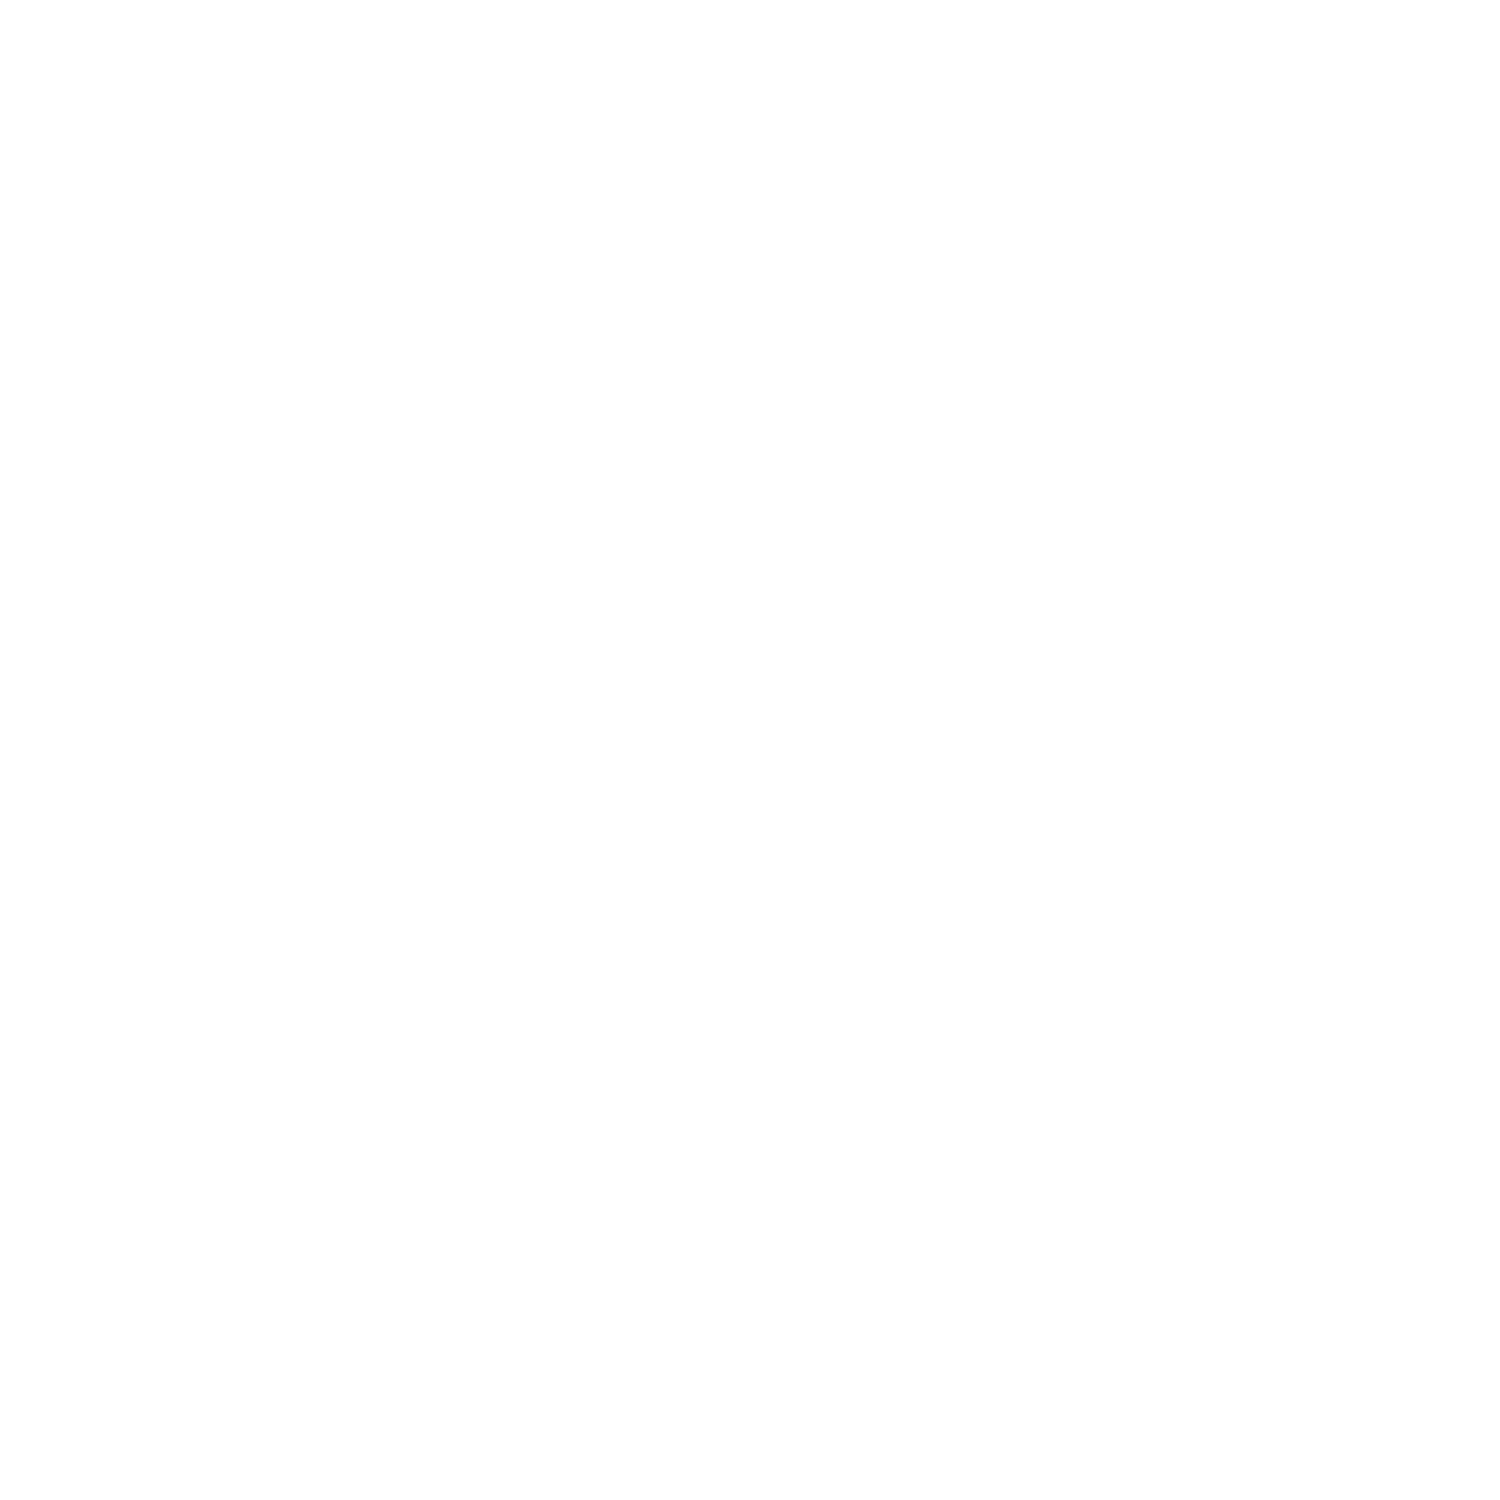 logo_tales-of-reval.png